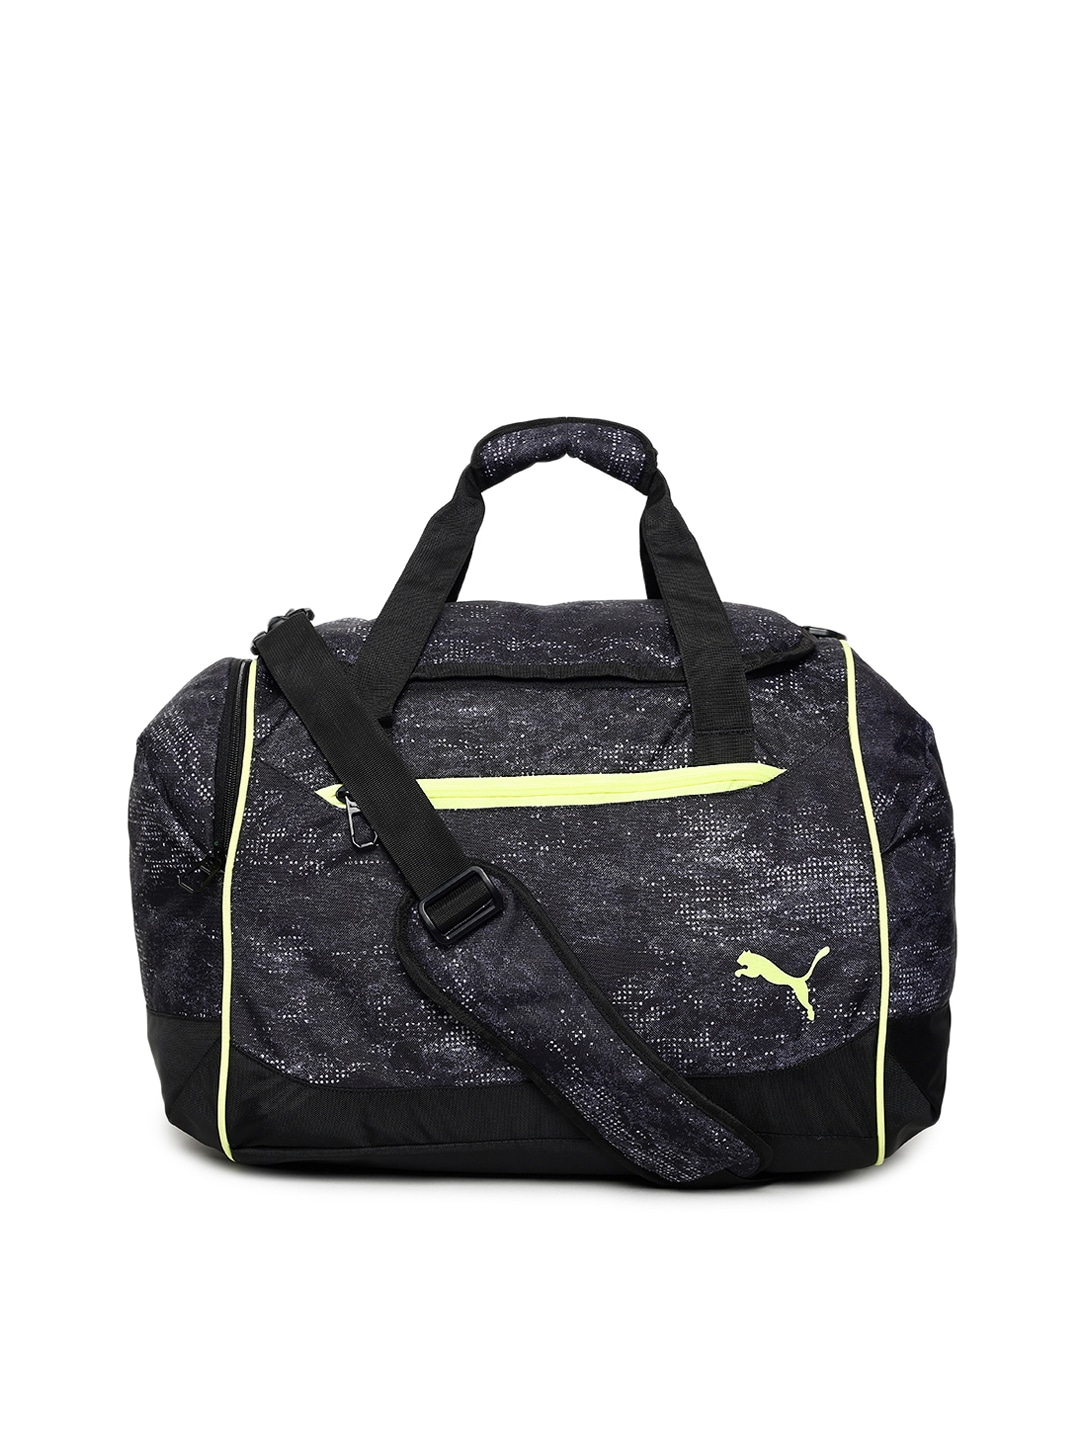 Women Gym Bags - Buy Women Gym Bags online in India 176fa34f49bf4